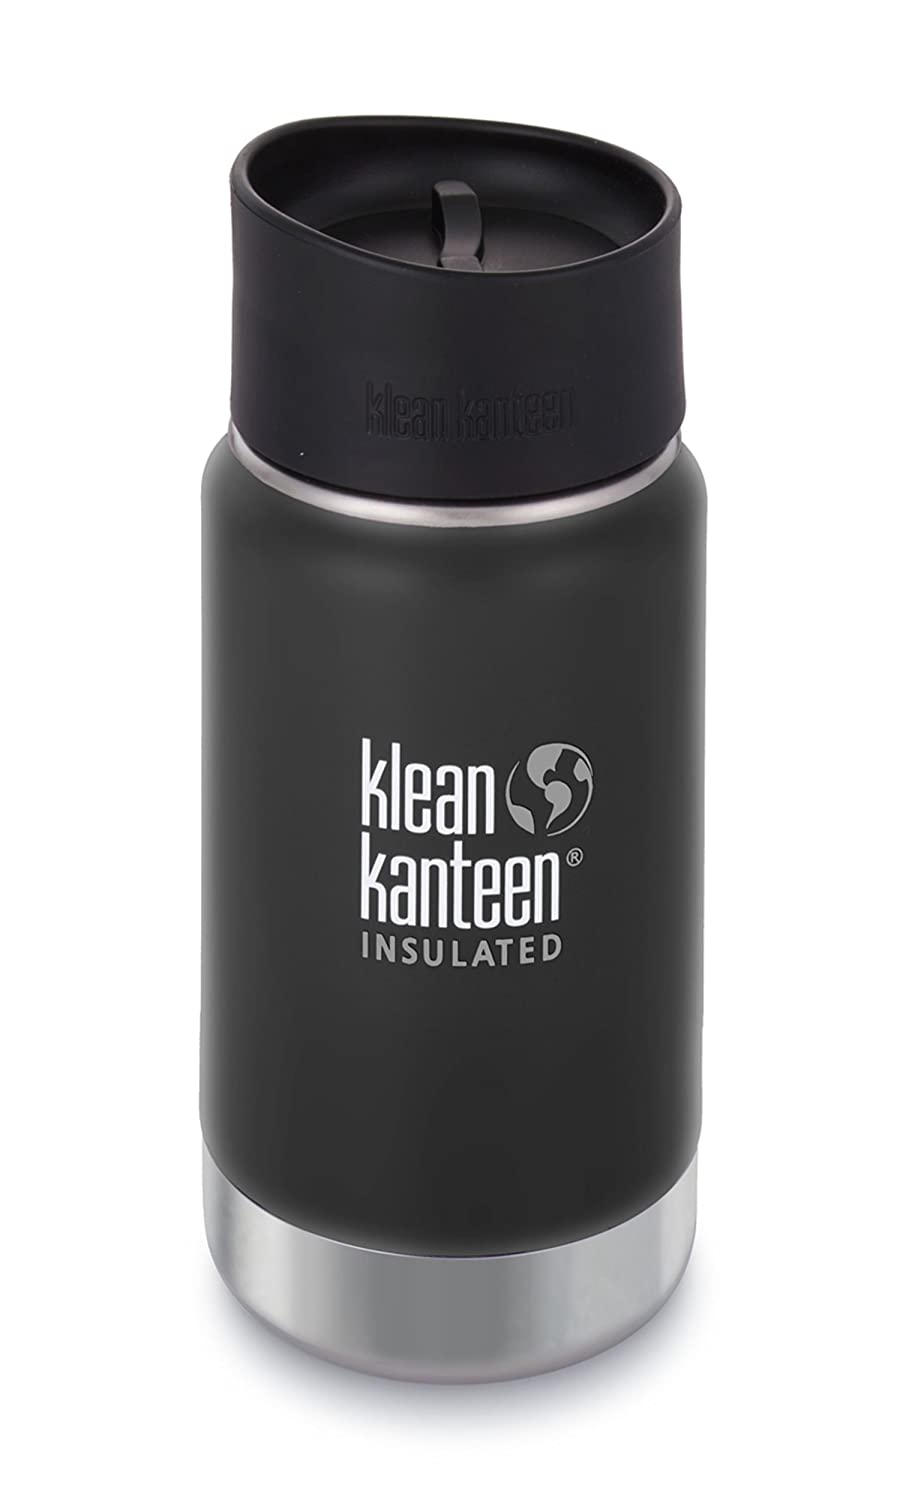 Klean Kanteen Wide Double Wall Vacuum Insulated Stainless Steel Coffee Mug with Leak Proof Café Cap 2.0 K12VWPCC-GPK